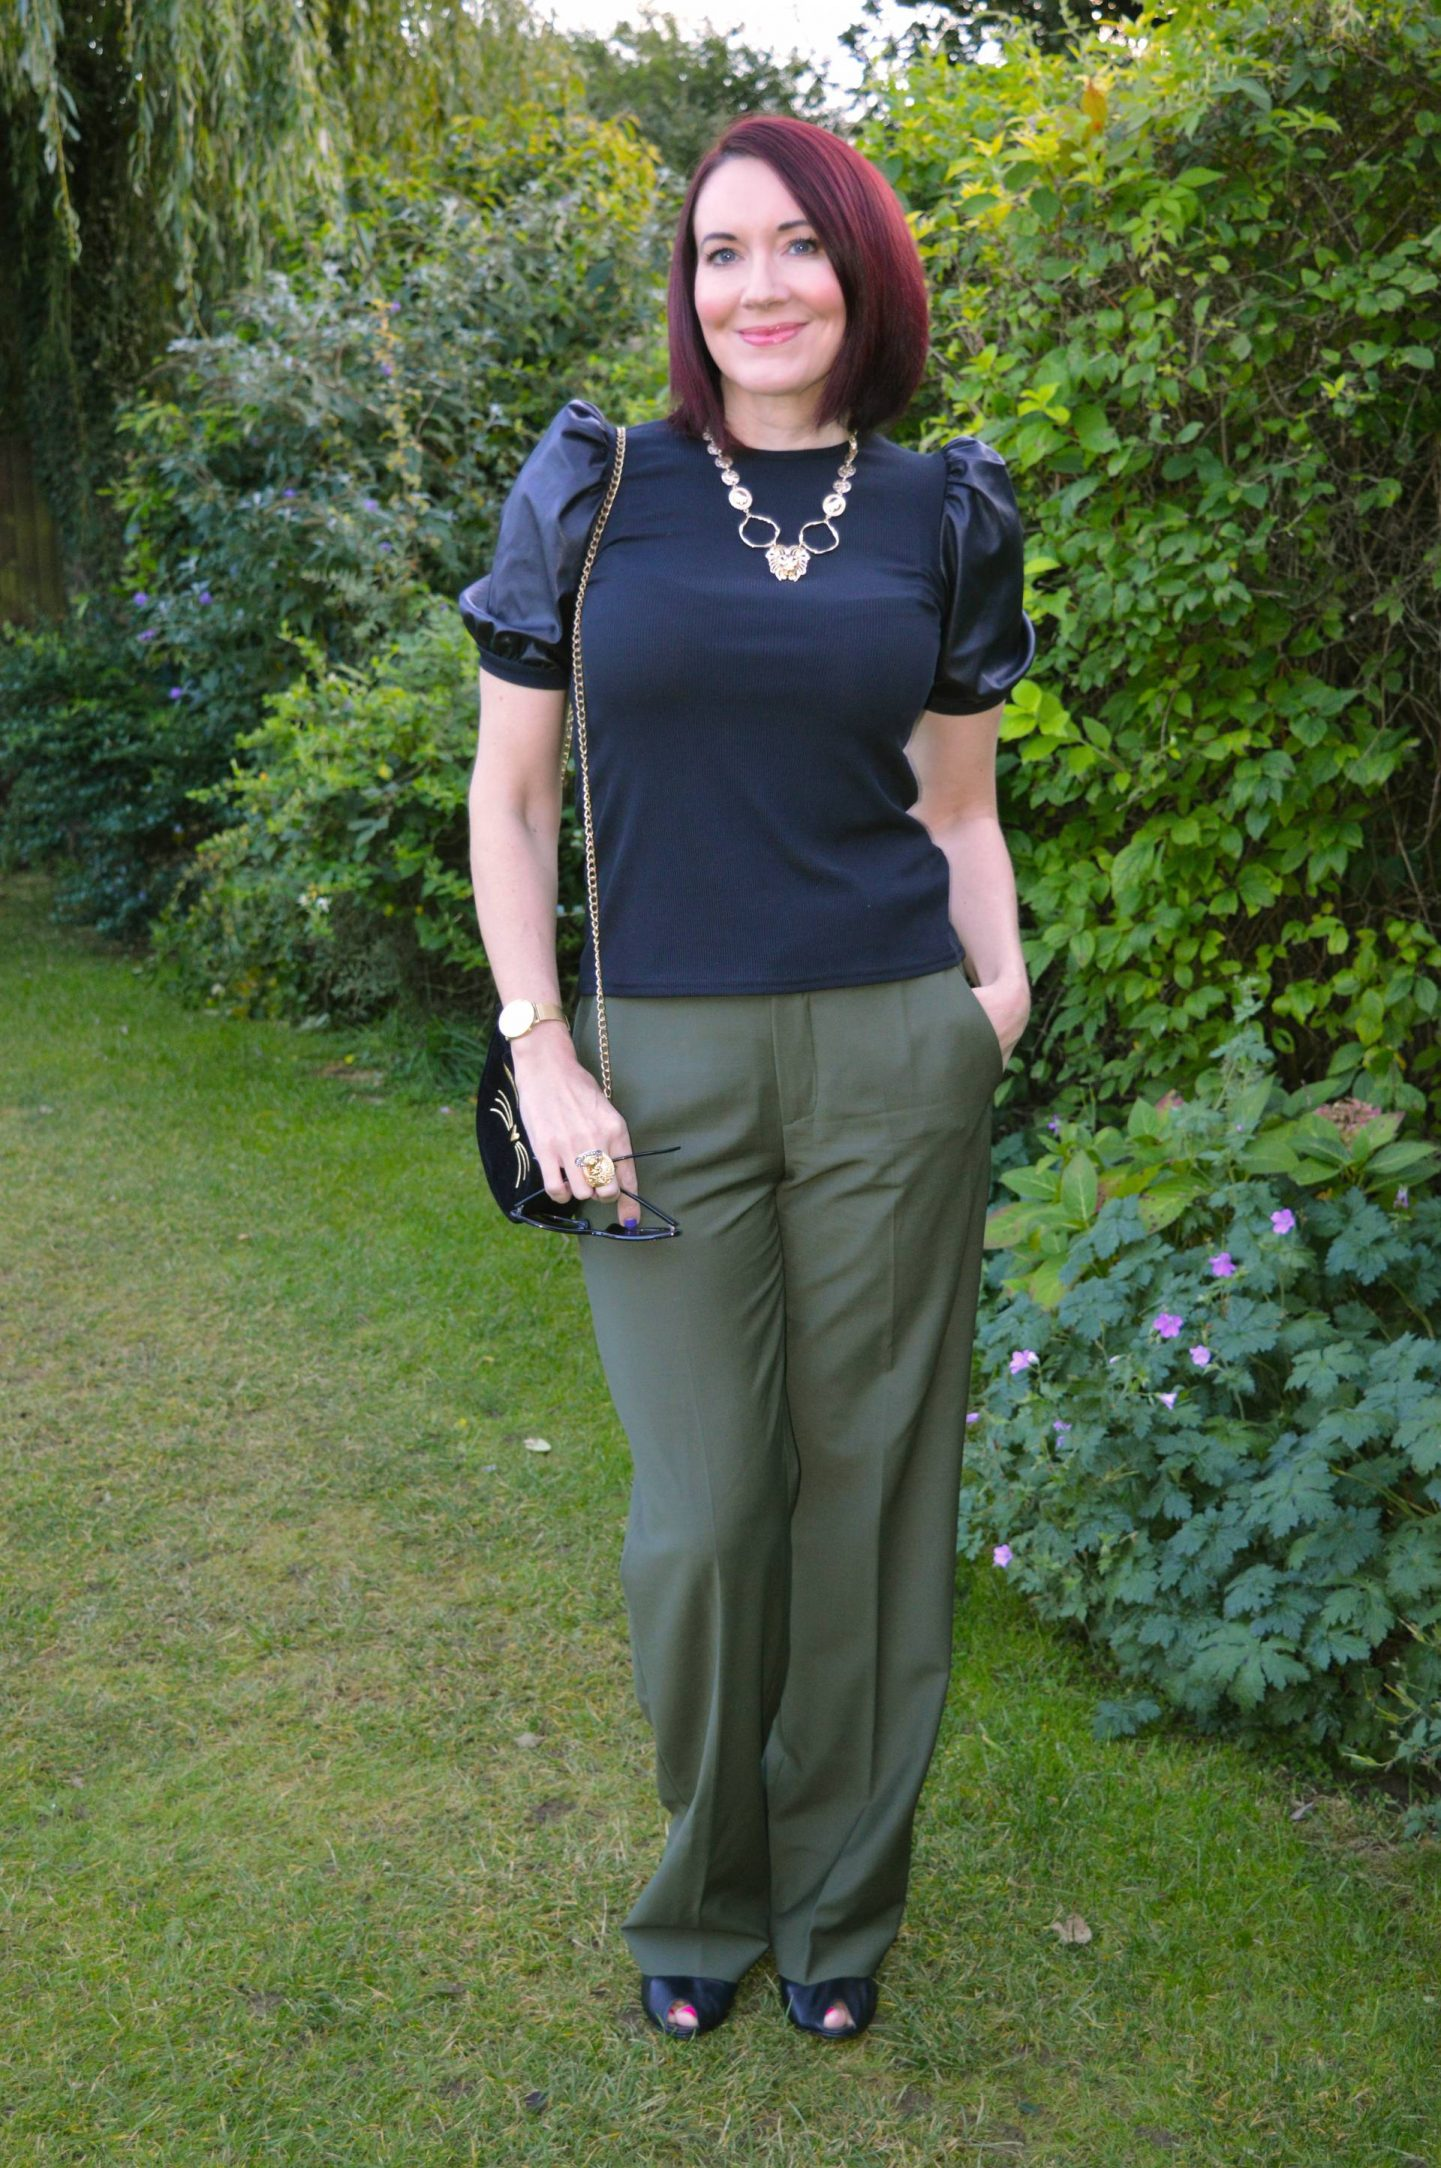 New Look Black Faux Leather Puff Sleeves top and Zara Khaki Trousers